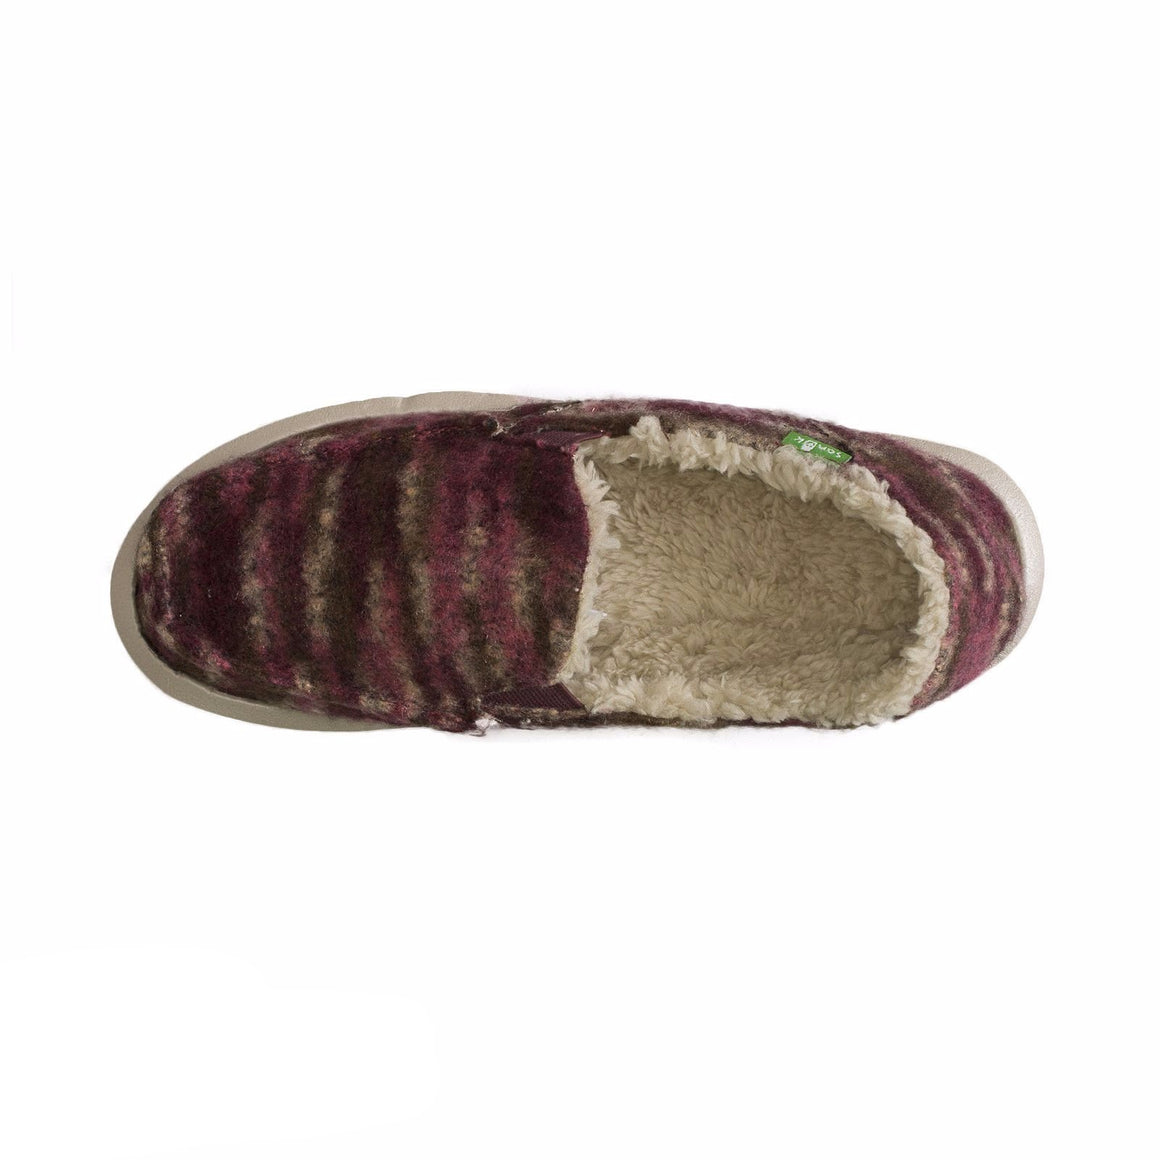 Sanuk Calichill Burgundy Shoes